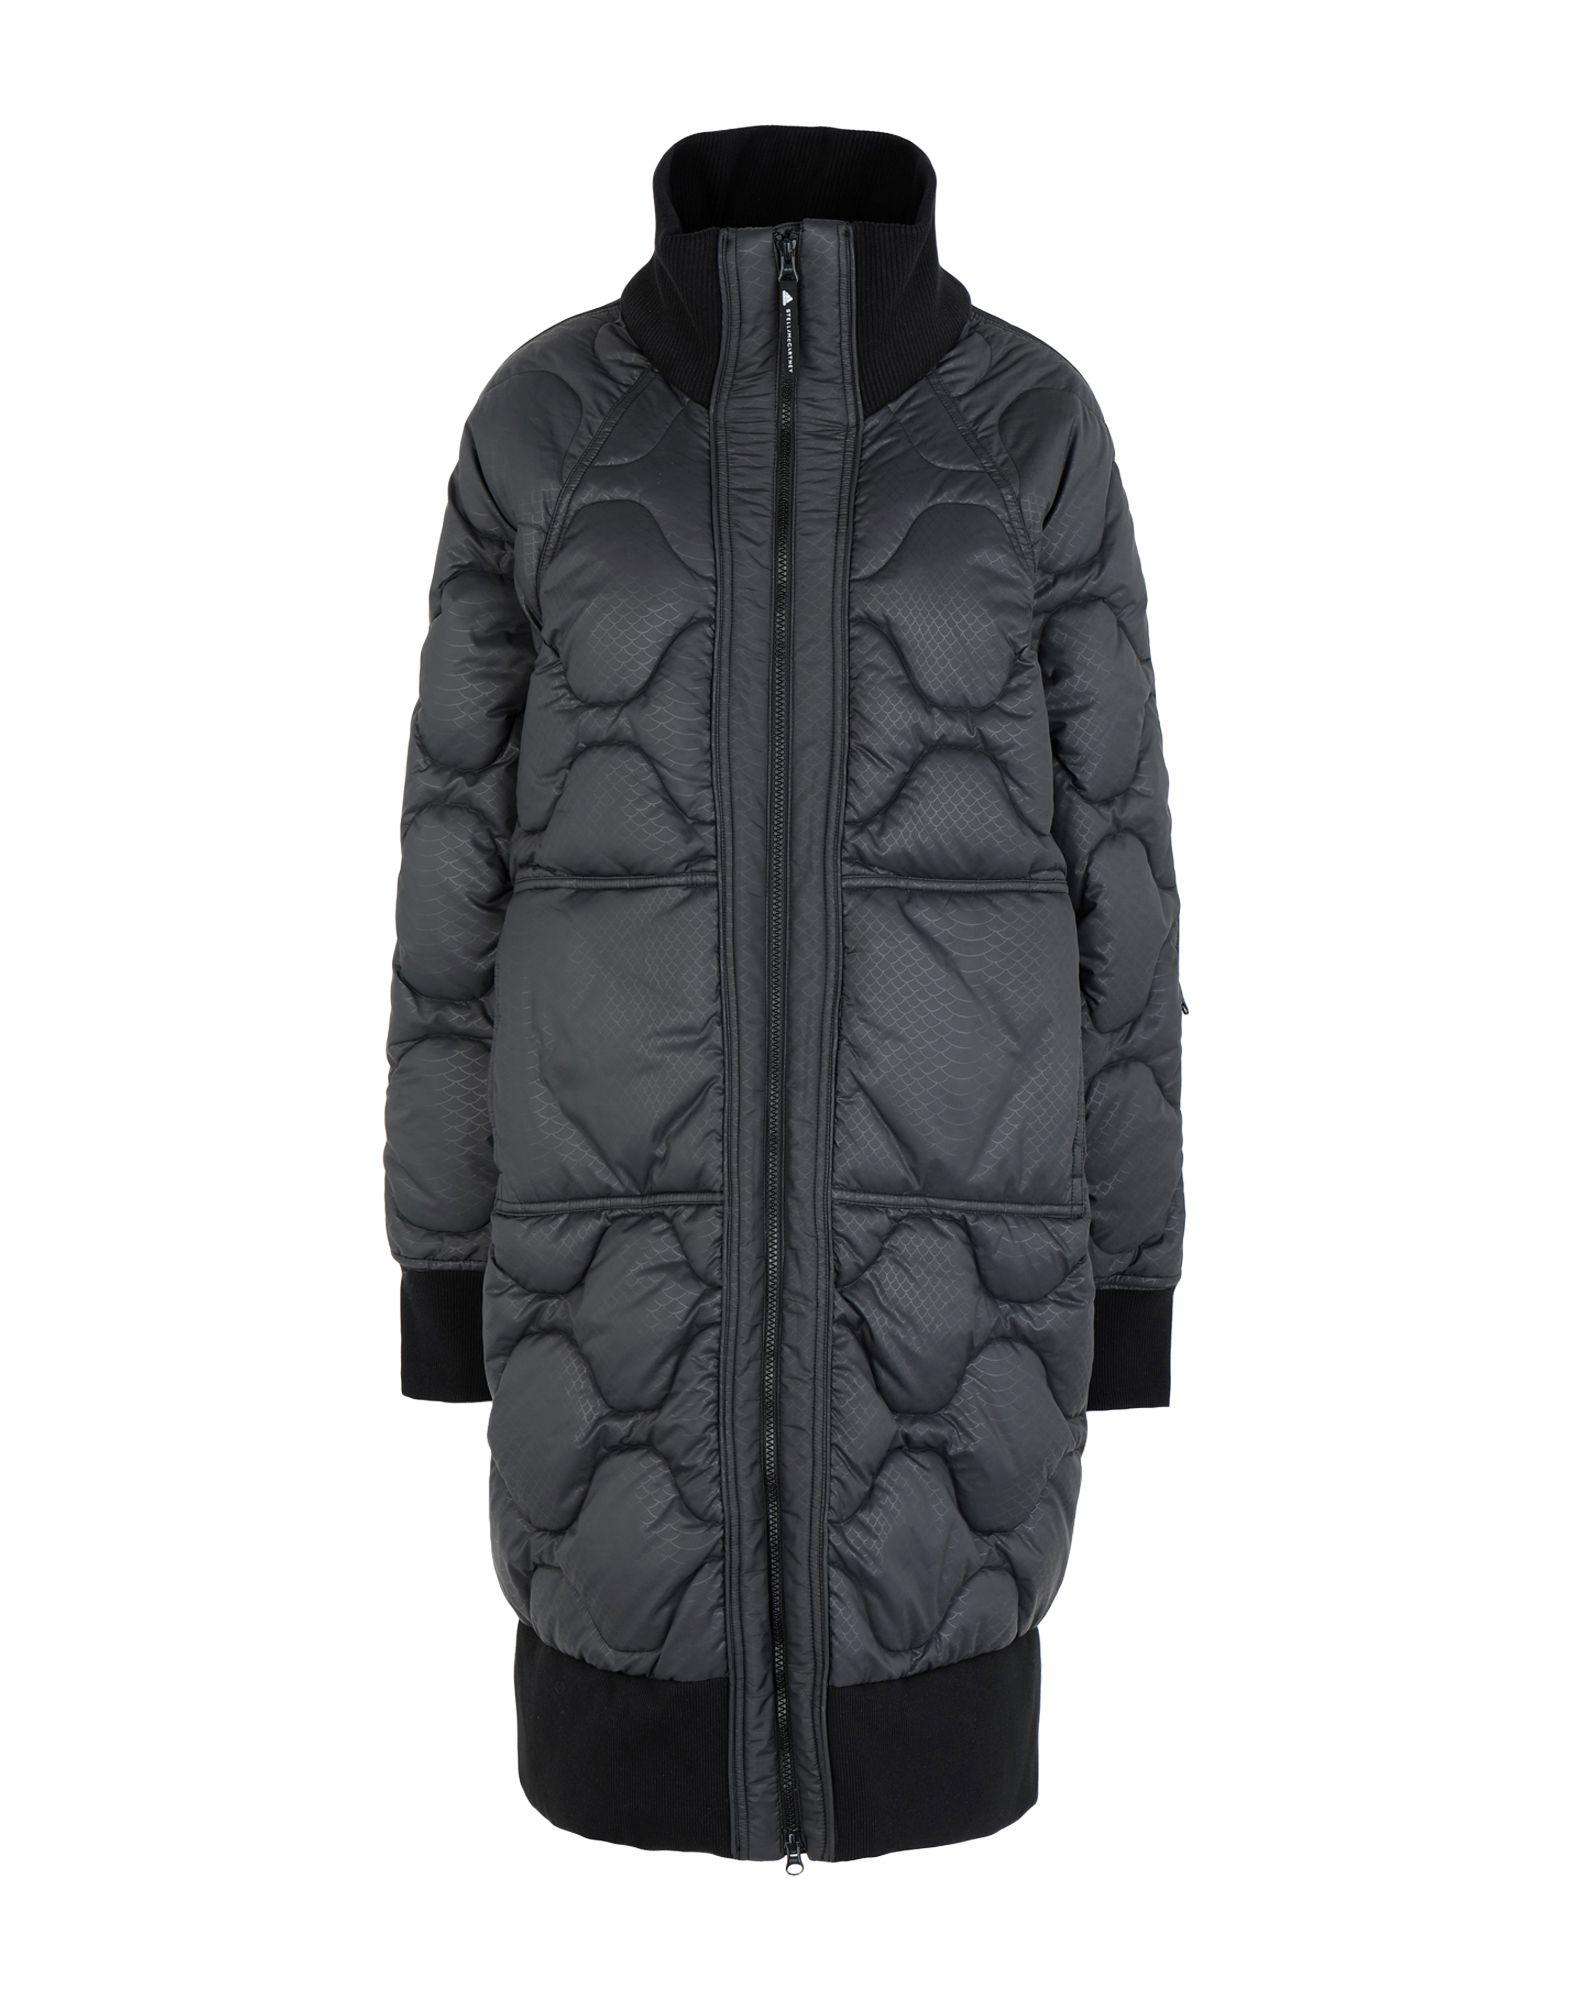 02a1a1ebe Lyst - adidas By Stella McCartney Synthetic Down Jacket in Gray